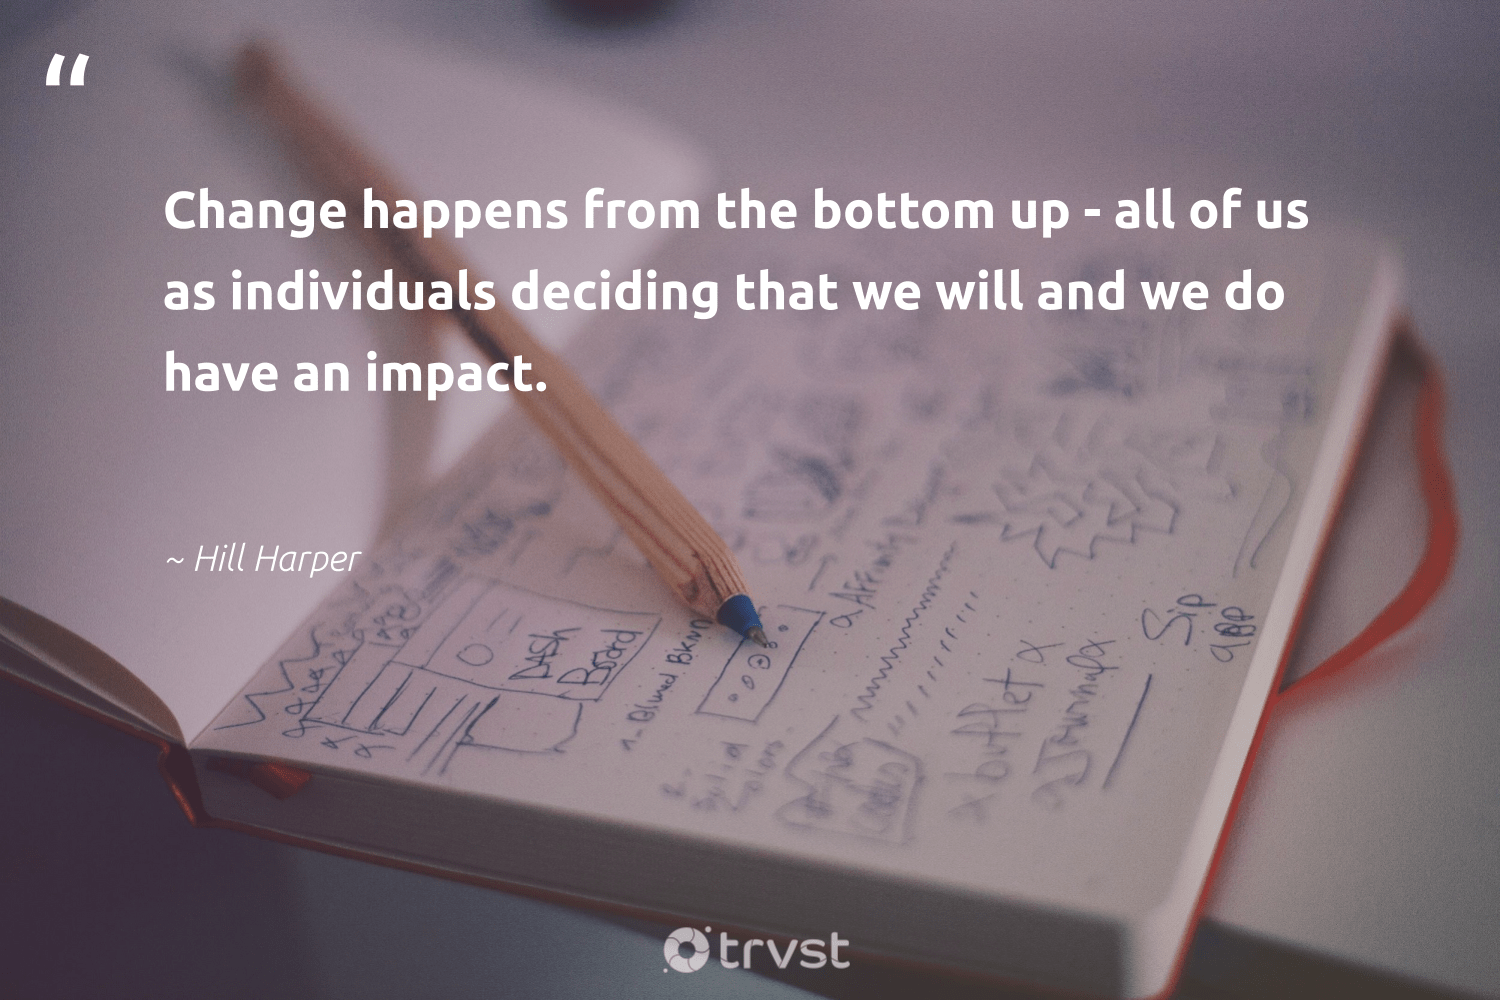 """Change happens from the bottom up - all of us as individuals deciding that we will and we do have an impact.""  - Hill Harper #trvst #quotes #impact #dogood #gogreen #socialchange #bethechange #makeadifference #dosomething #giveback #dotherightthing #ethicalbusiness"